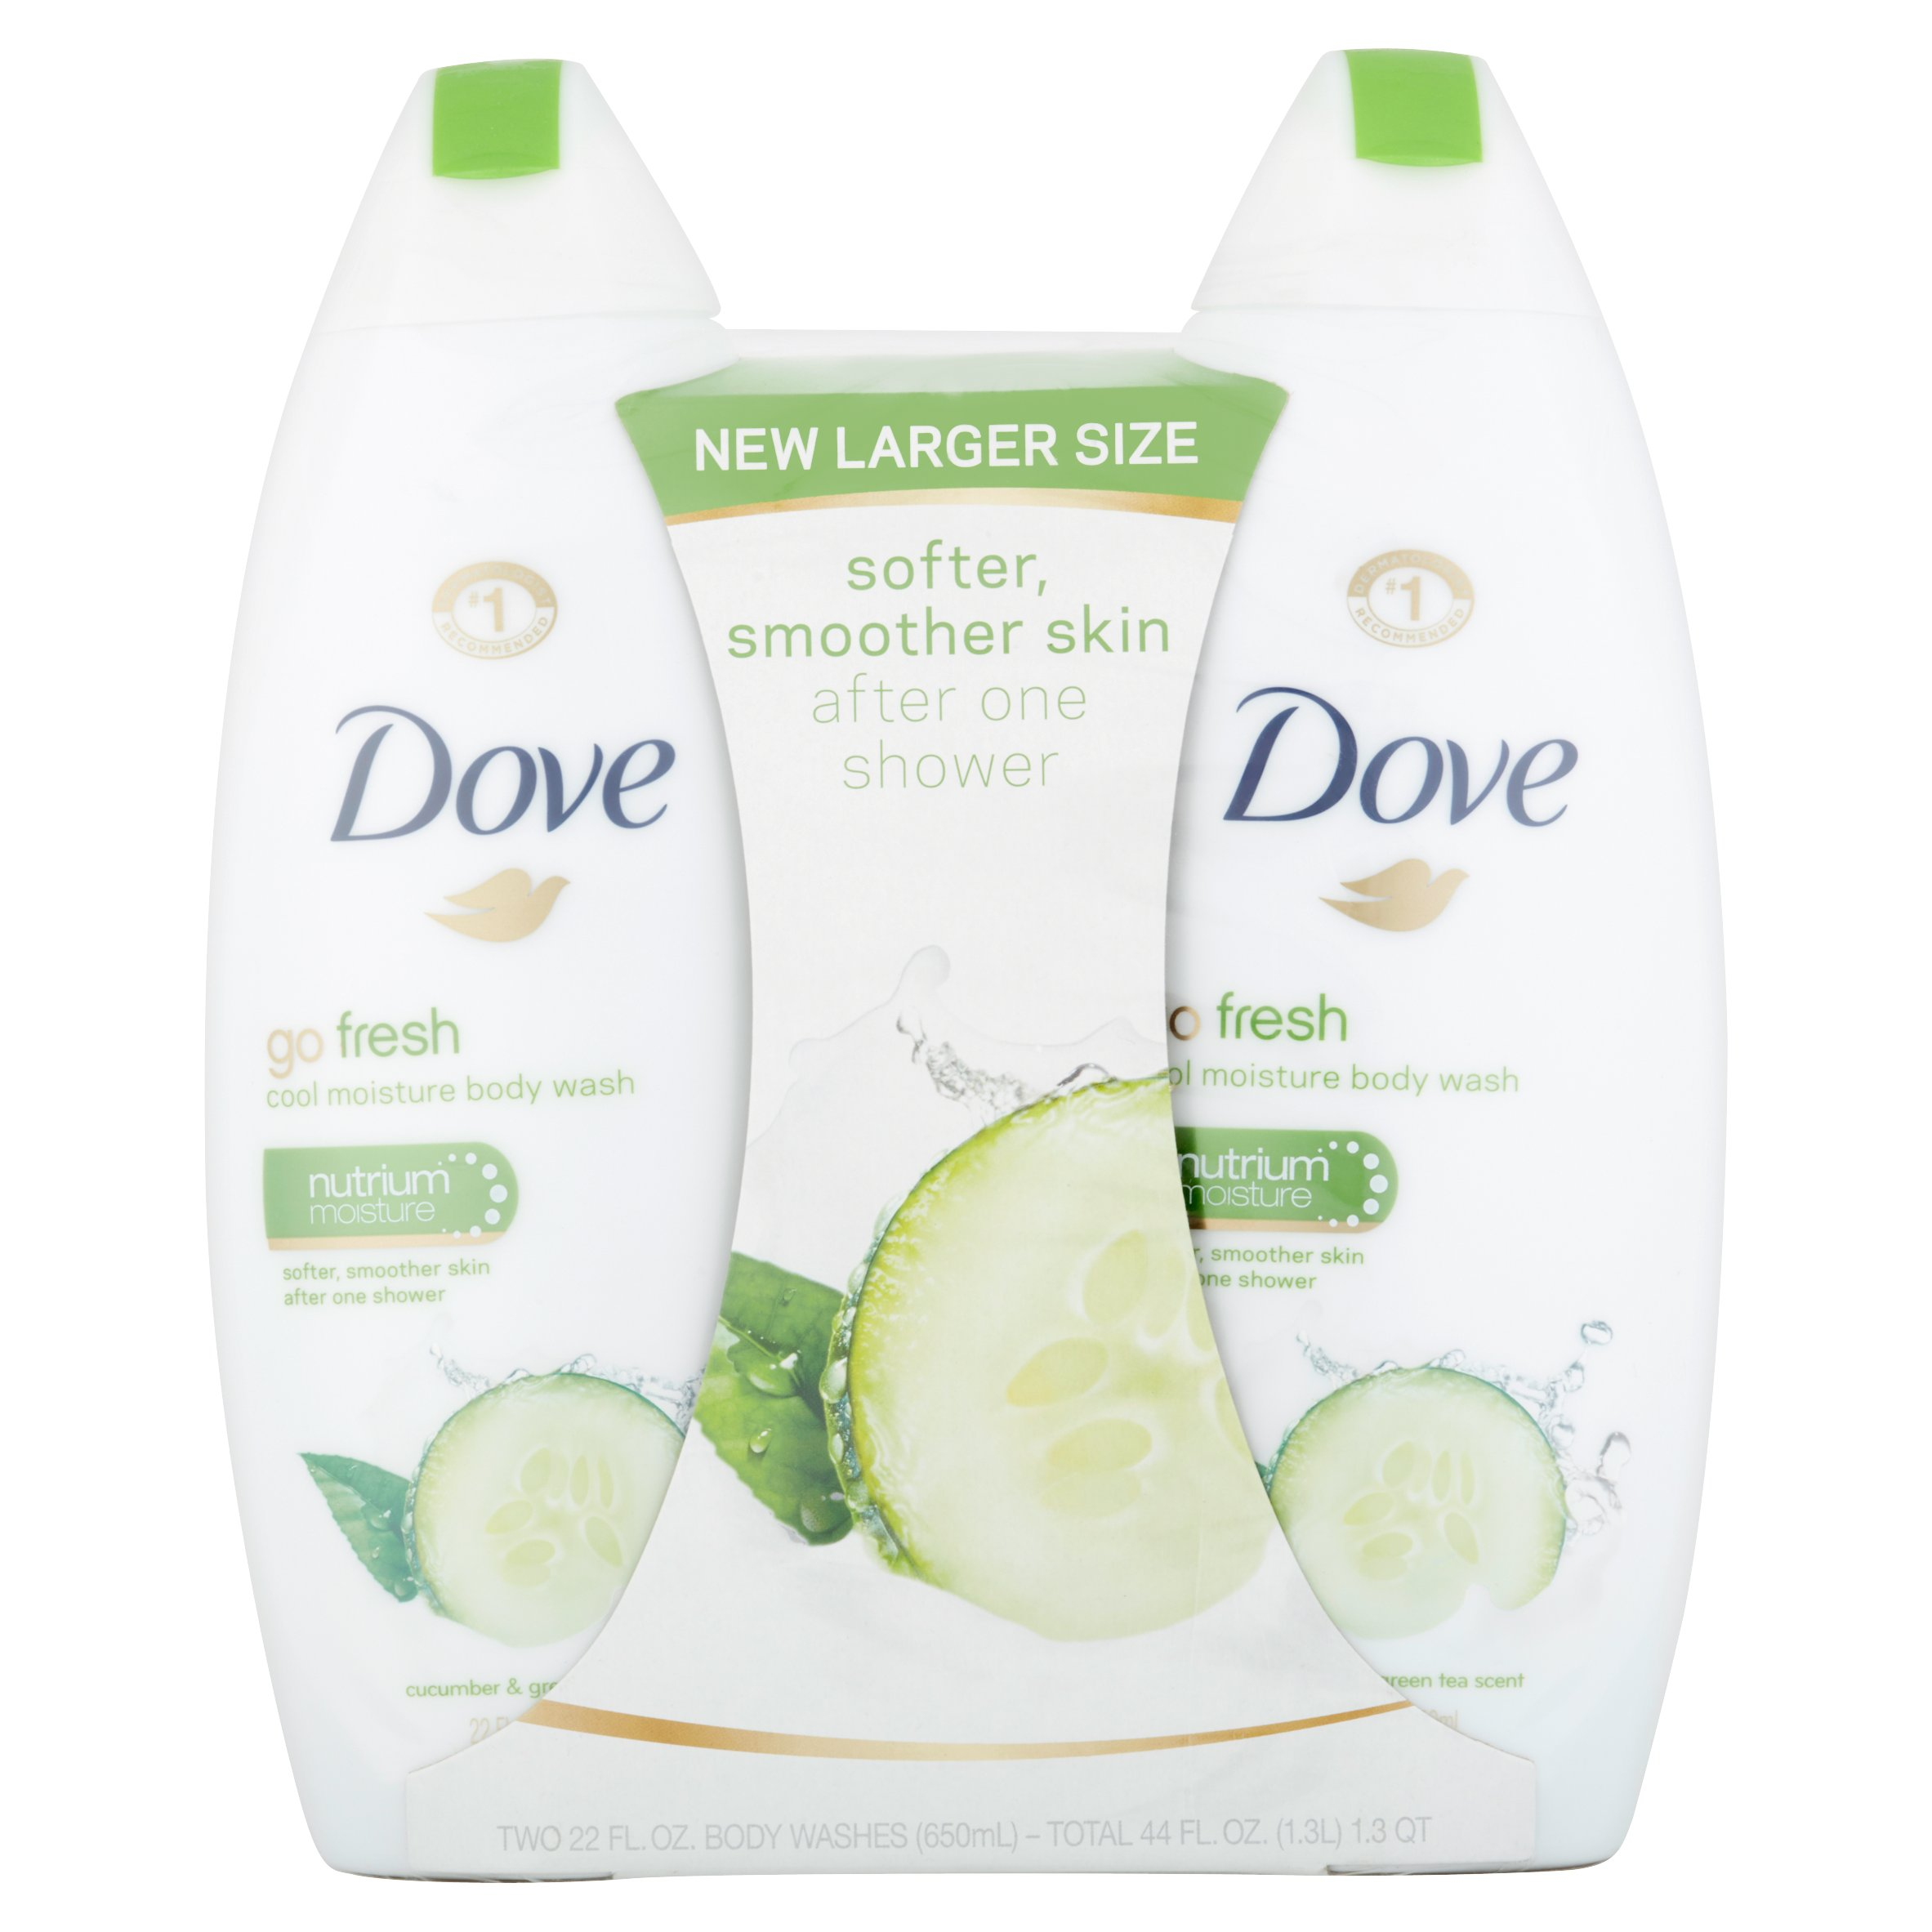 Dove go fresh Cucumber and Green Tea Body Wash 22 oz, Twin Pack - Walmart.com